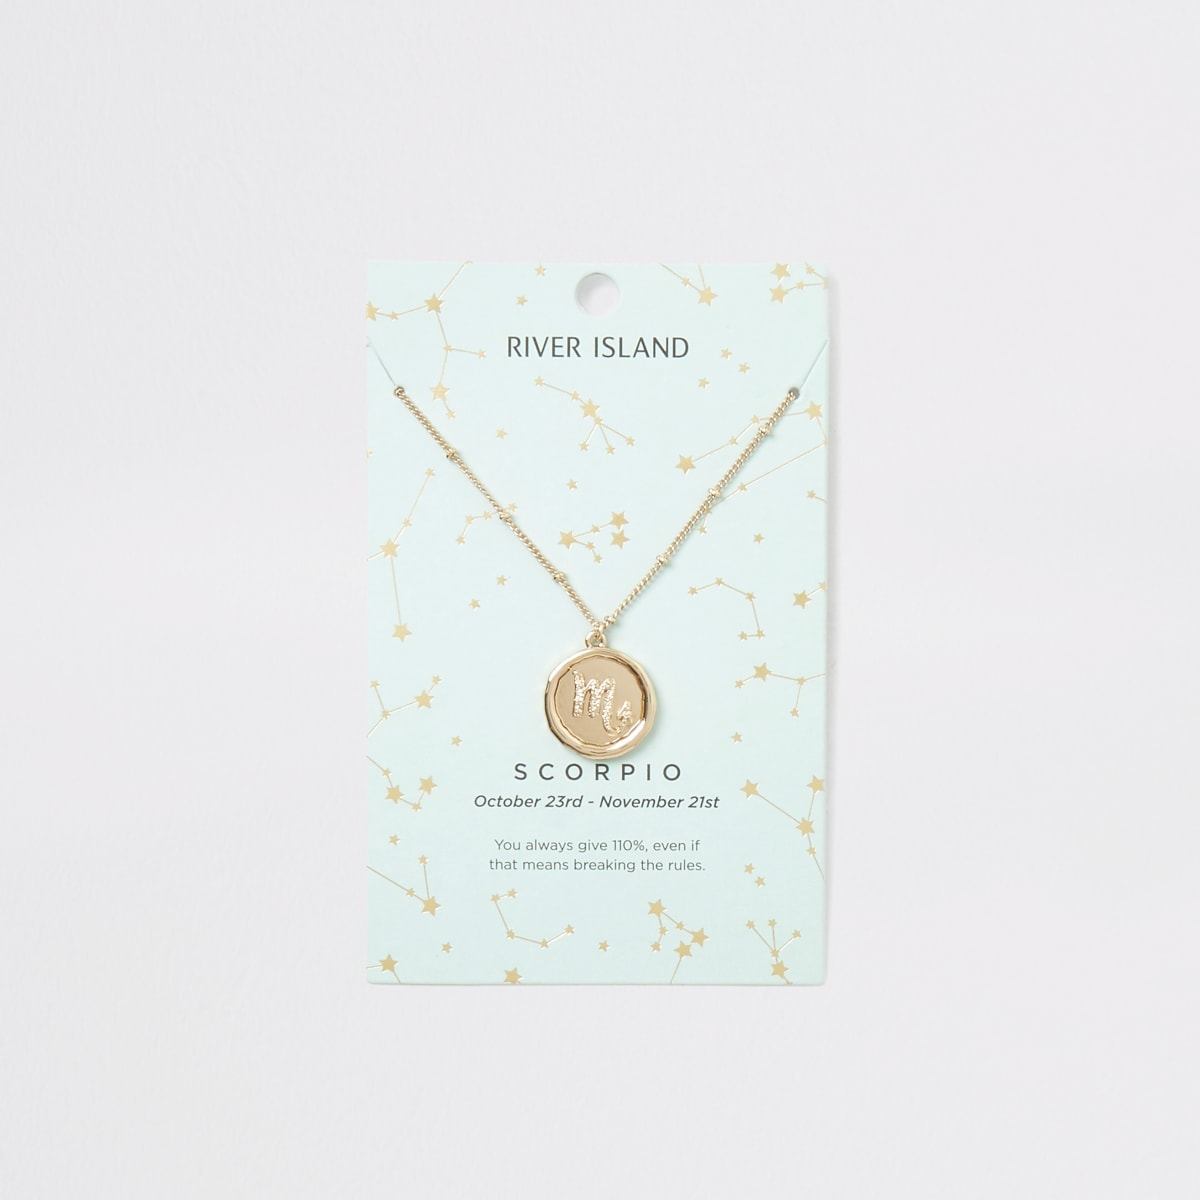 Scorpio zodiac sign gold colour necklace